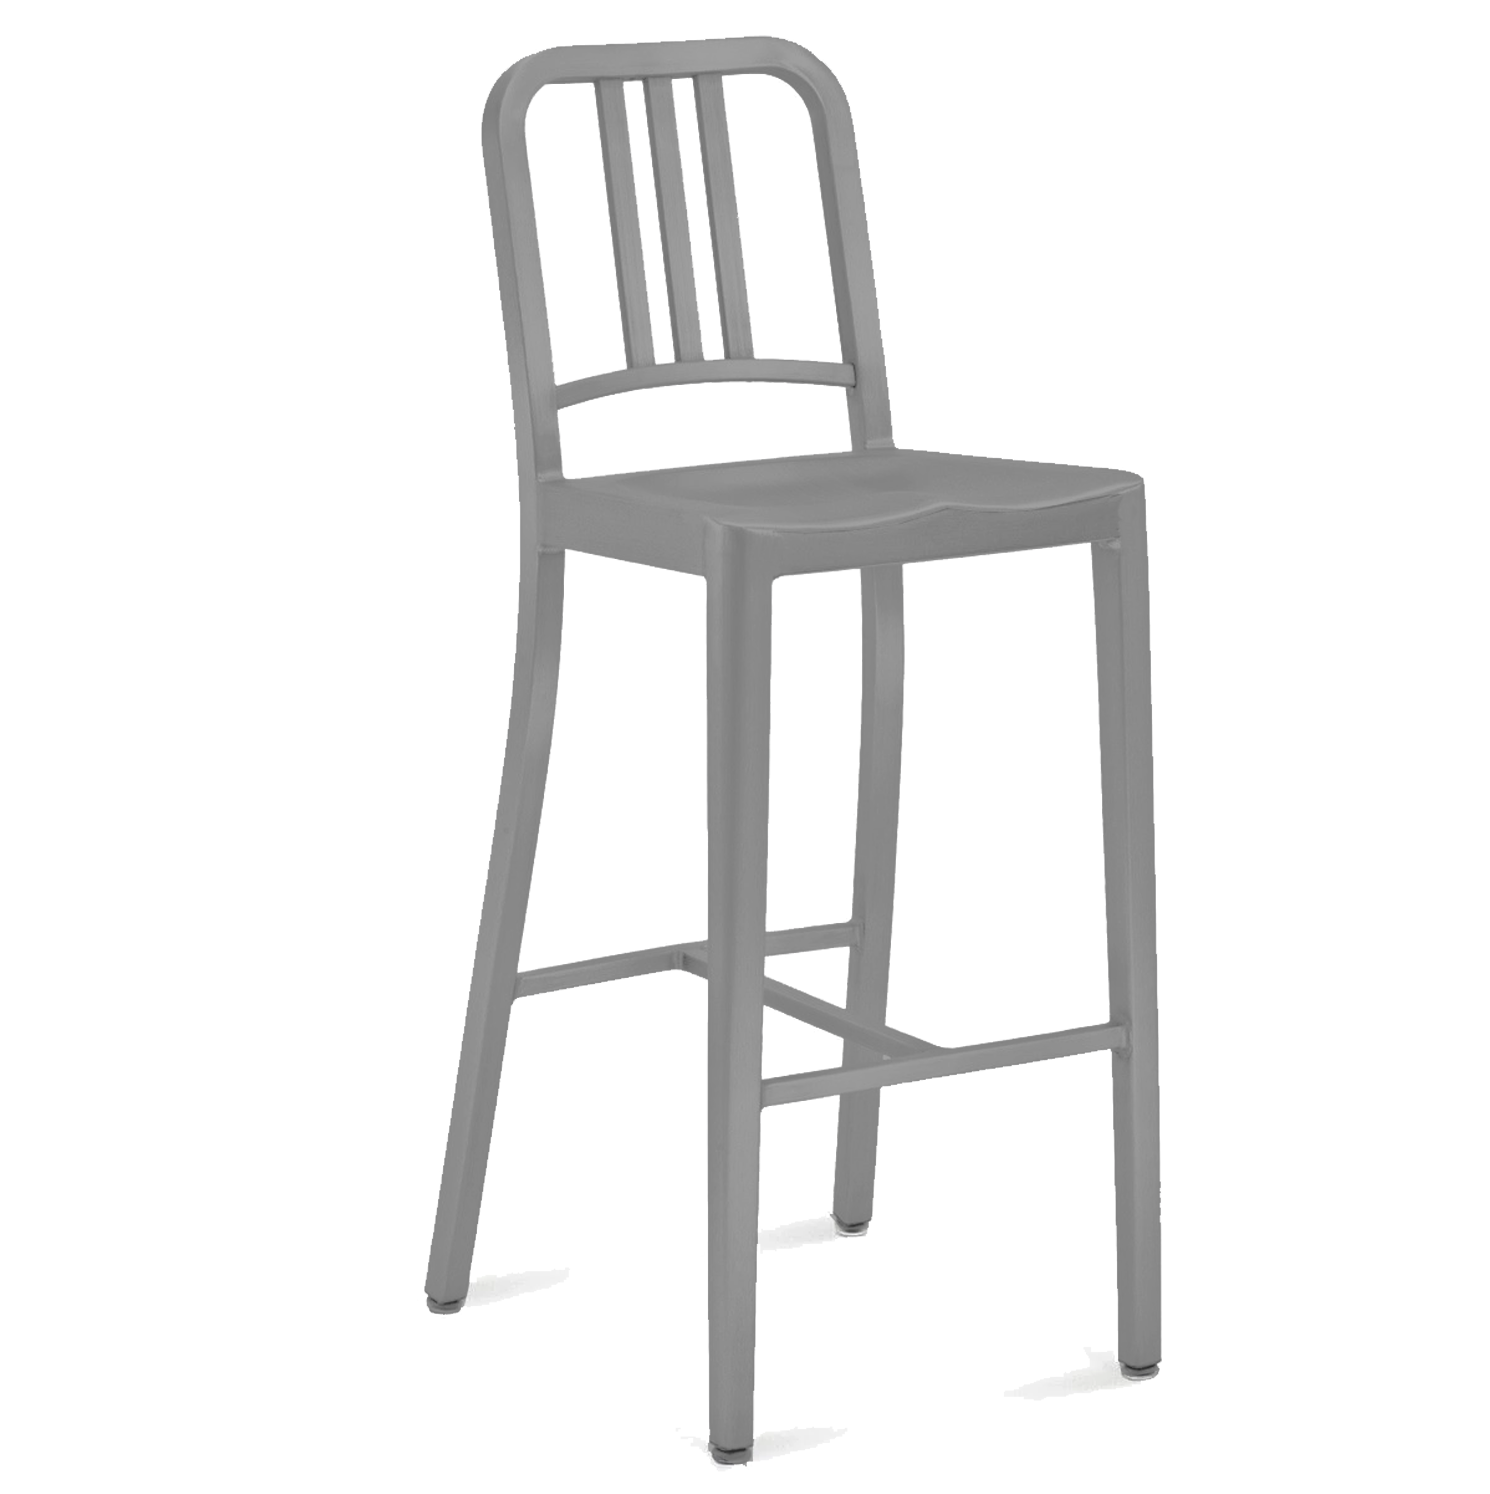 Emeco Style Navy Barstool H75cm (Aluminium with Powder Coat)